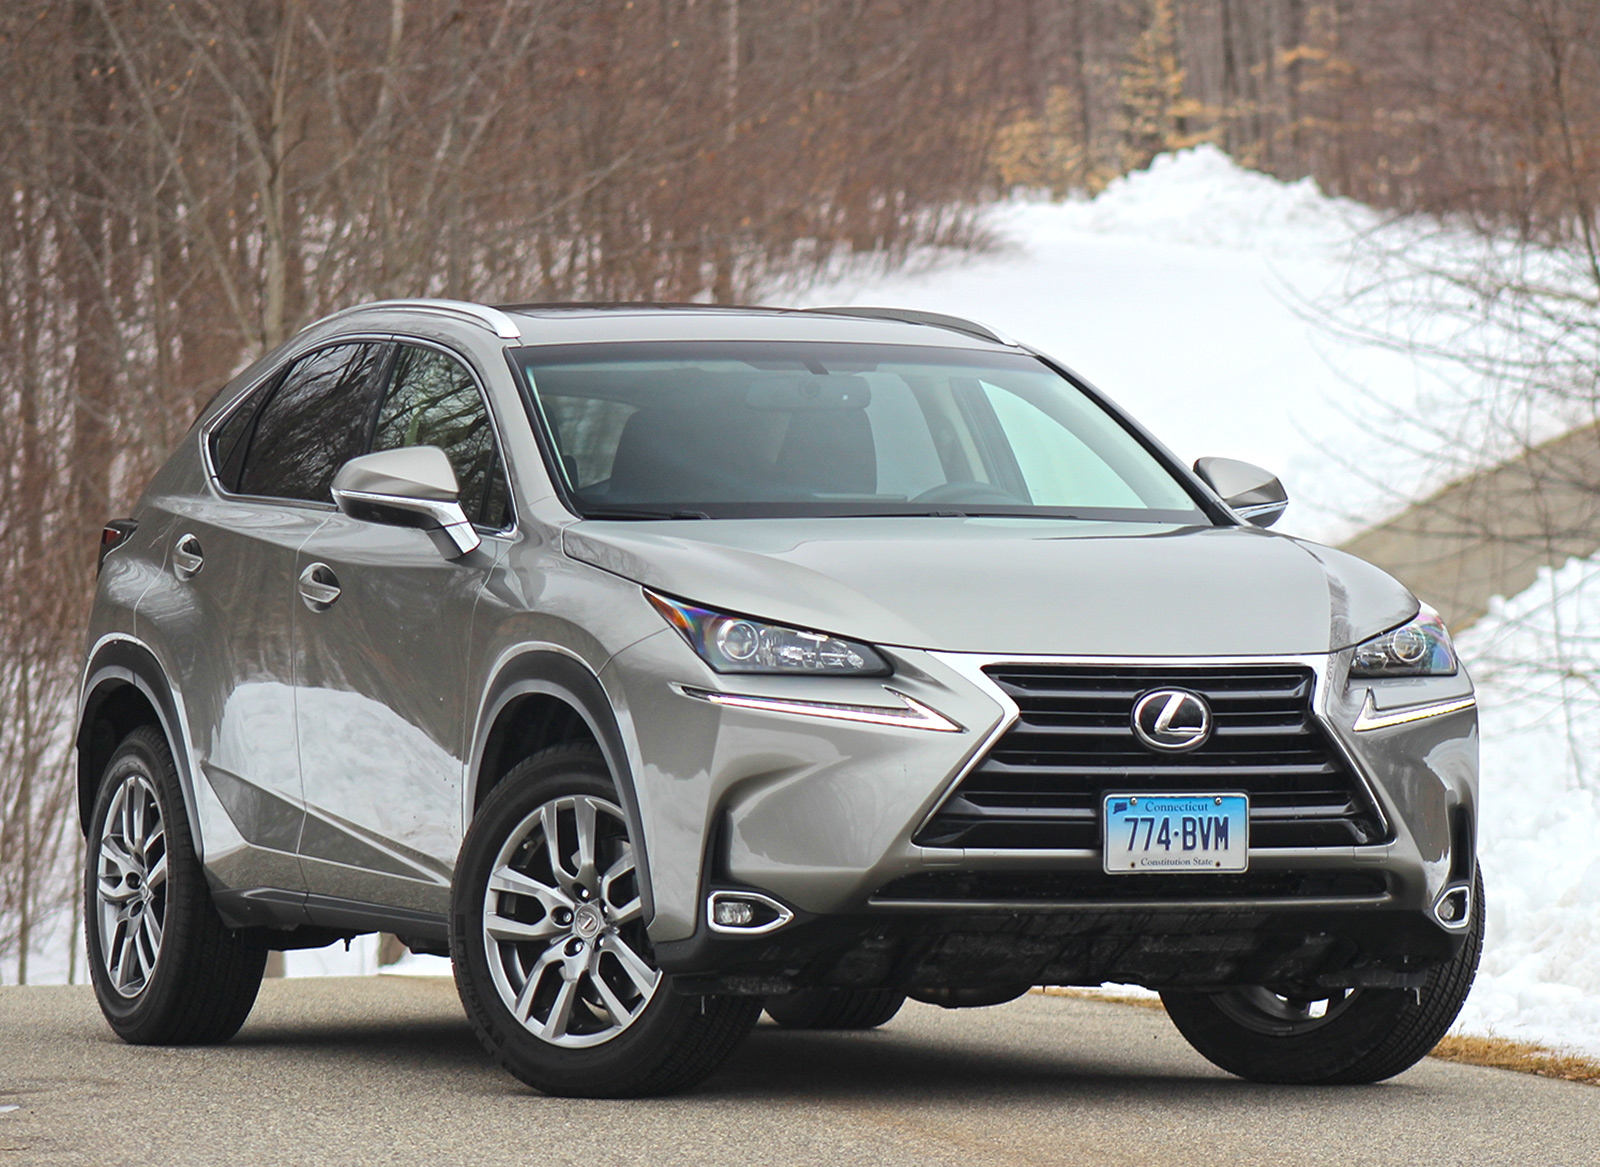 Lexus Joins The Crowded Upscale Compact SUV Fray With The New NX. Clearly,  Late To The Party, The Key Question Is, U201cDoes The NX Bring Anything New?u201d